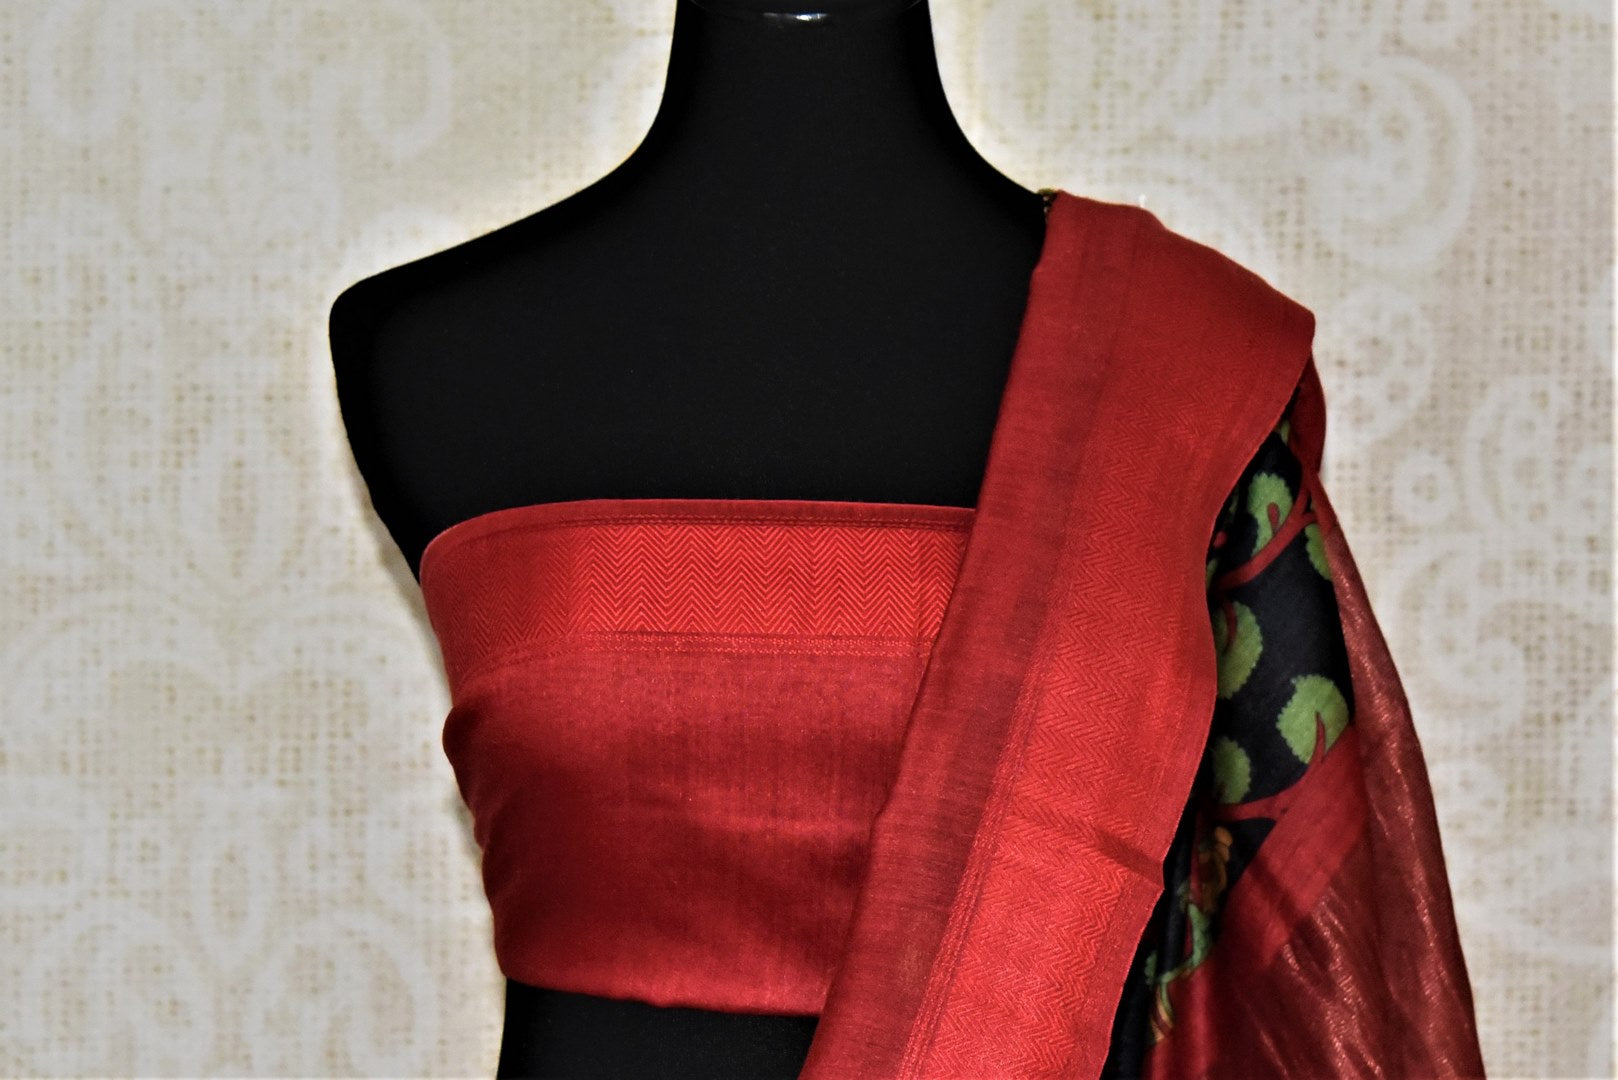 Shop ravishing black tussar silk saree online in USA with green floral print and red border. Make a beautiful appearance on special occasions with exquisite Indian designer sarees, pure silk saris from Pure Elegance Indian fashion store in USA.-blouse pallu